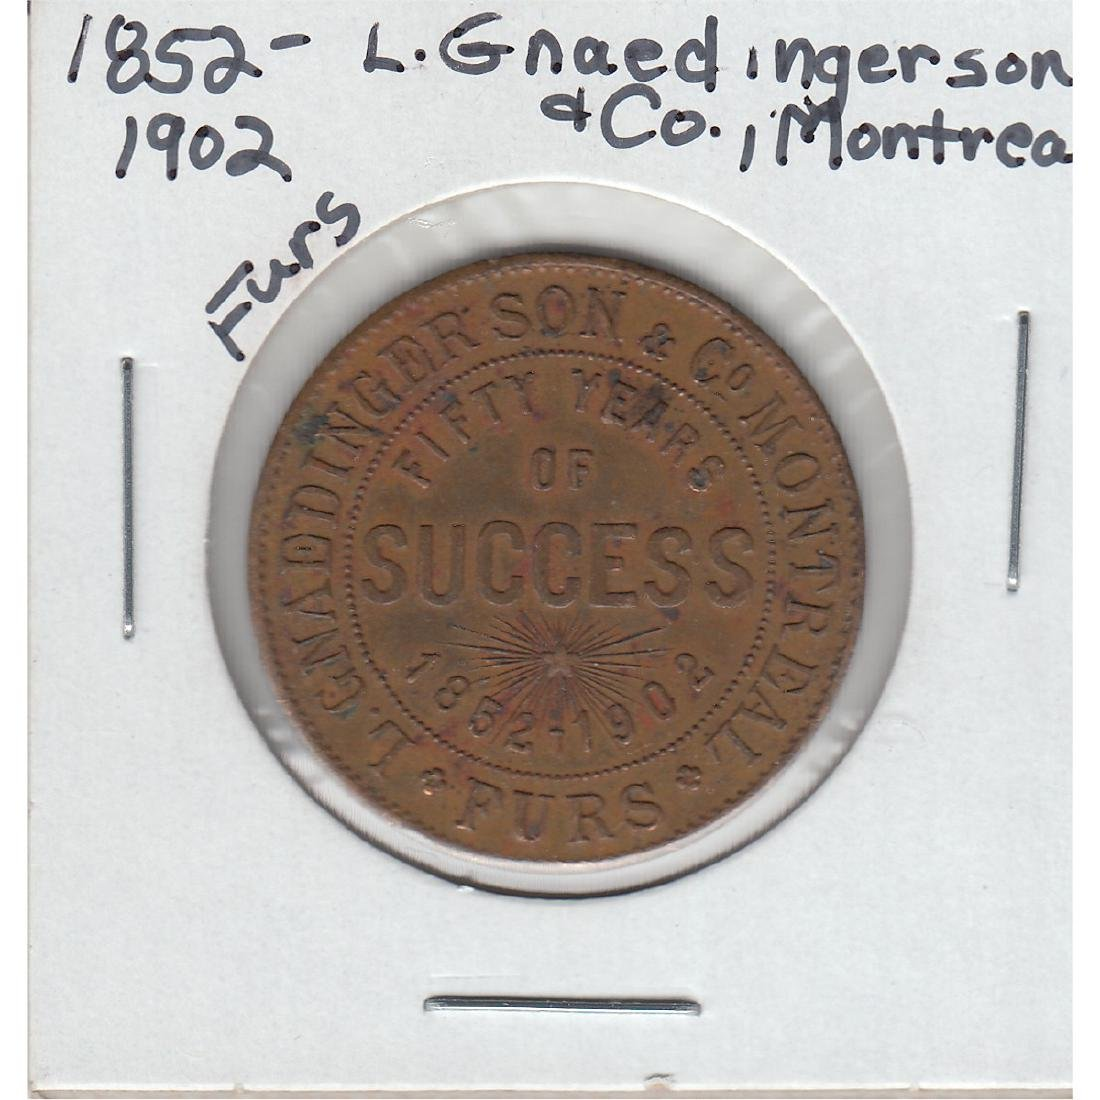 1852-1902 L. Gnaedinger Son & Co. Montreal Furs Fifty